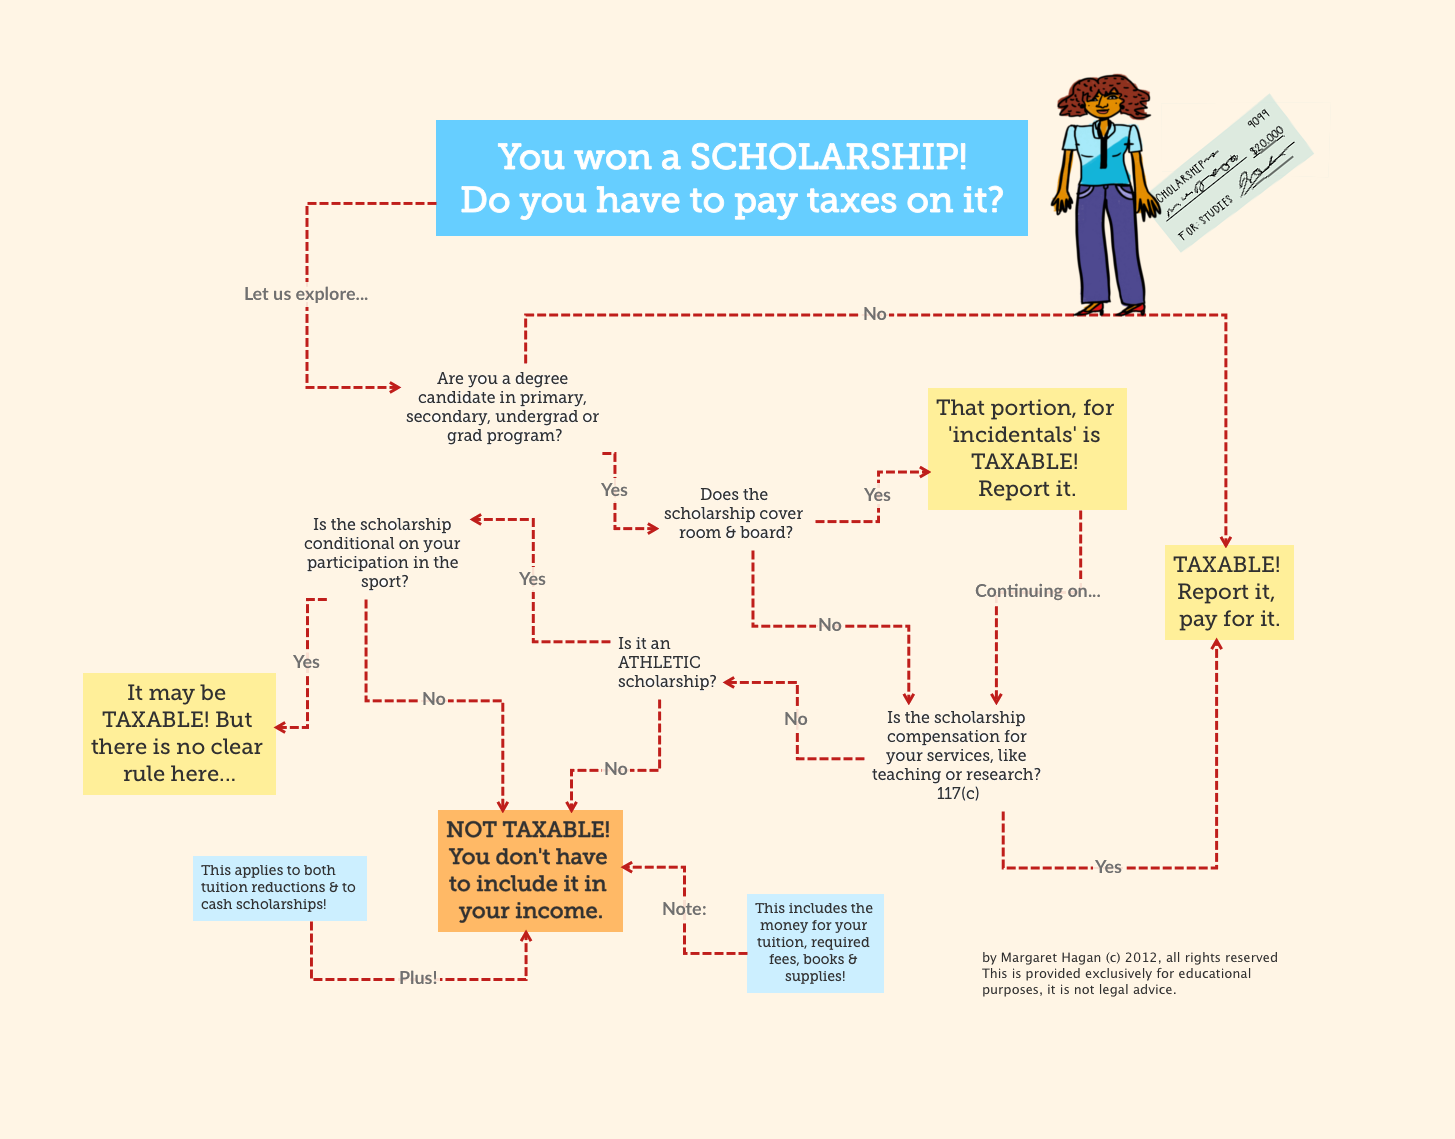 Tax Law flowchart - You won a SCHOLARSHIP! Do you have to pay taxes on it?